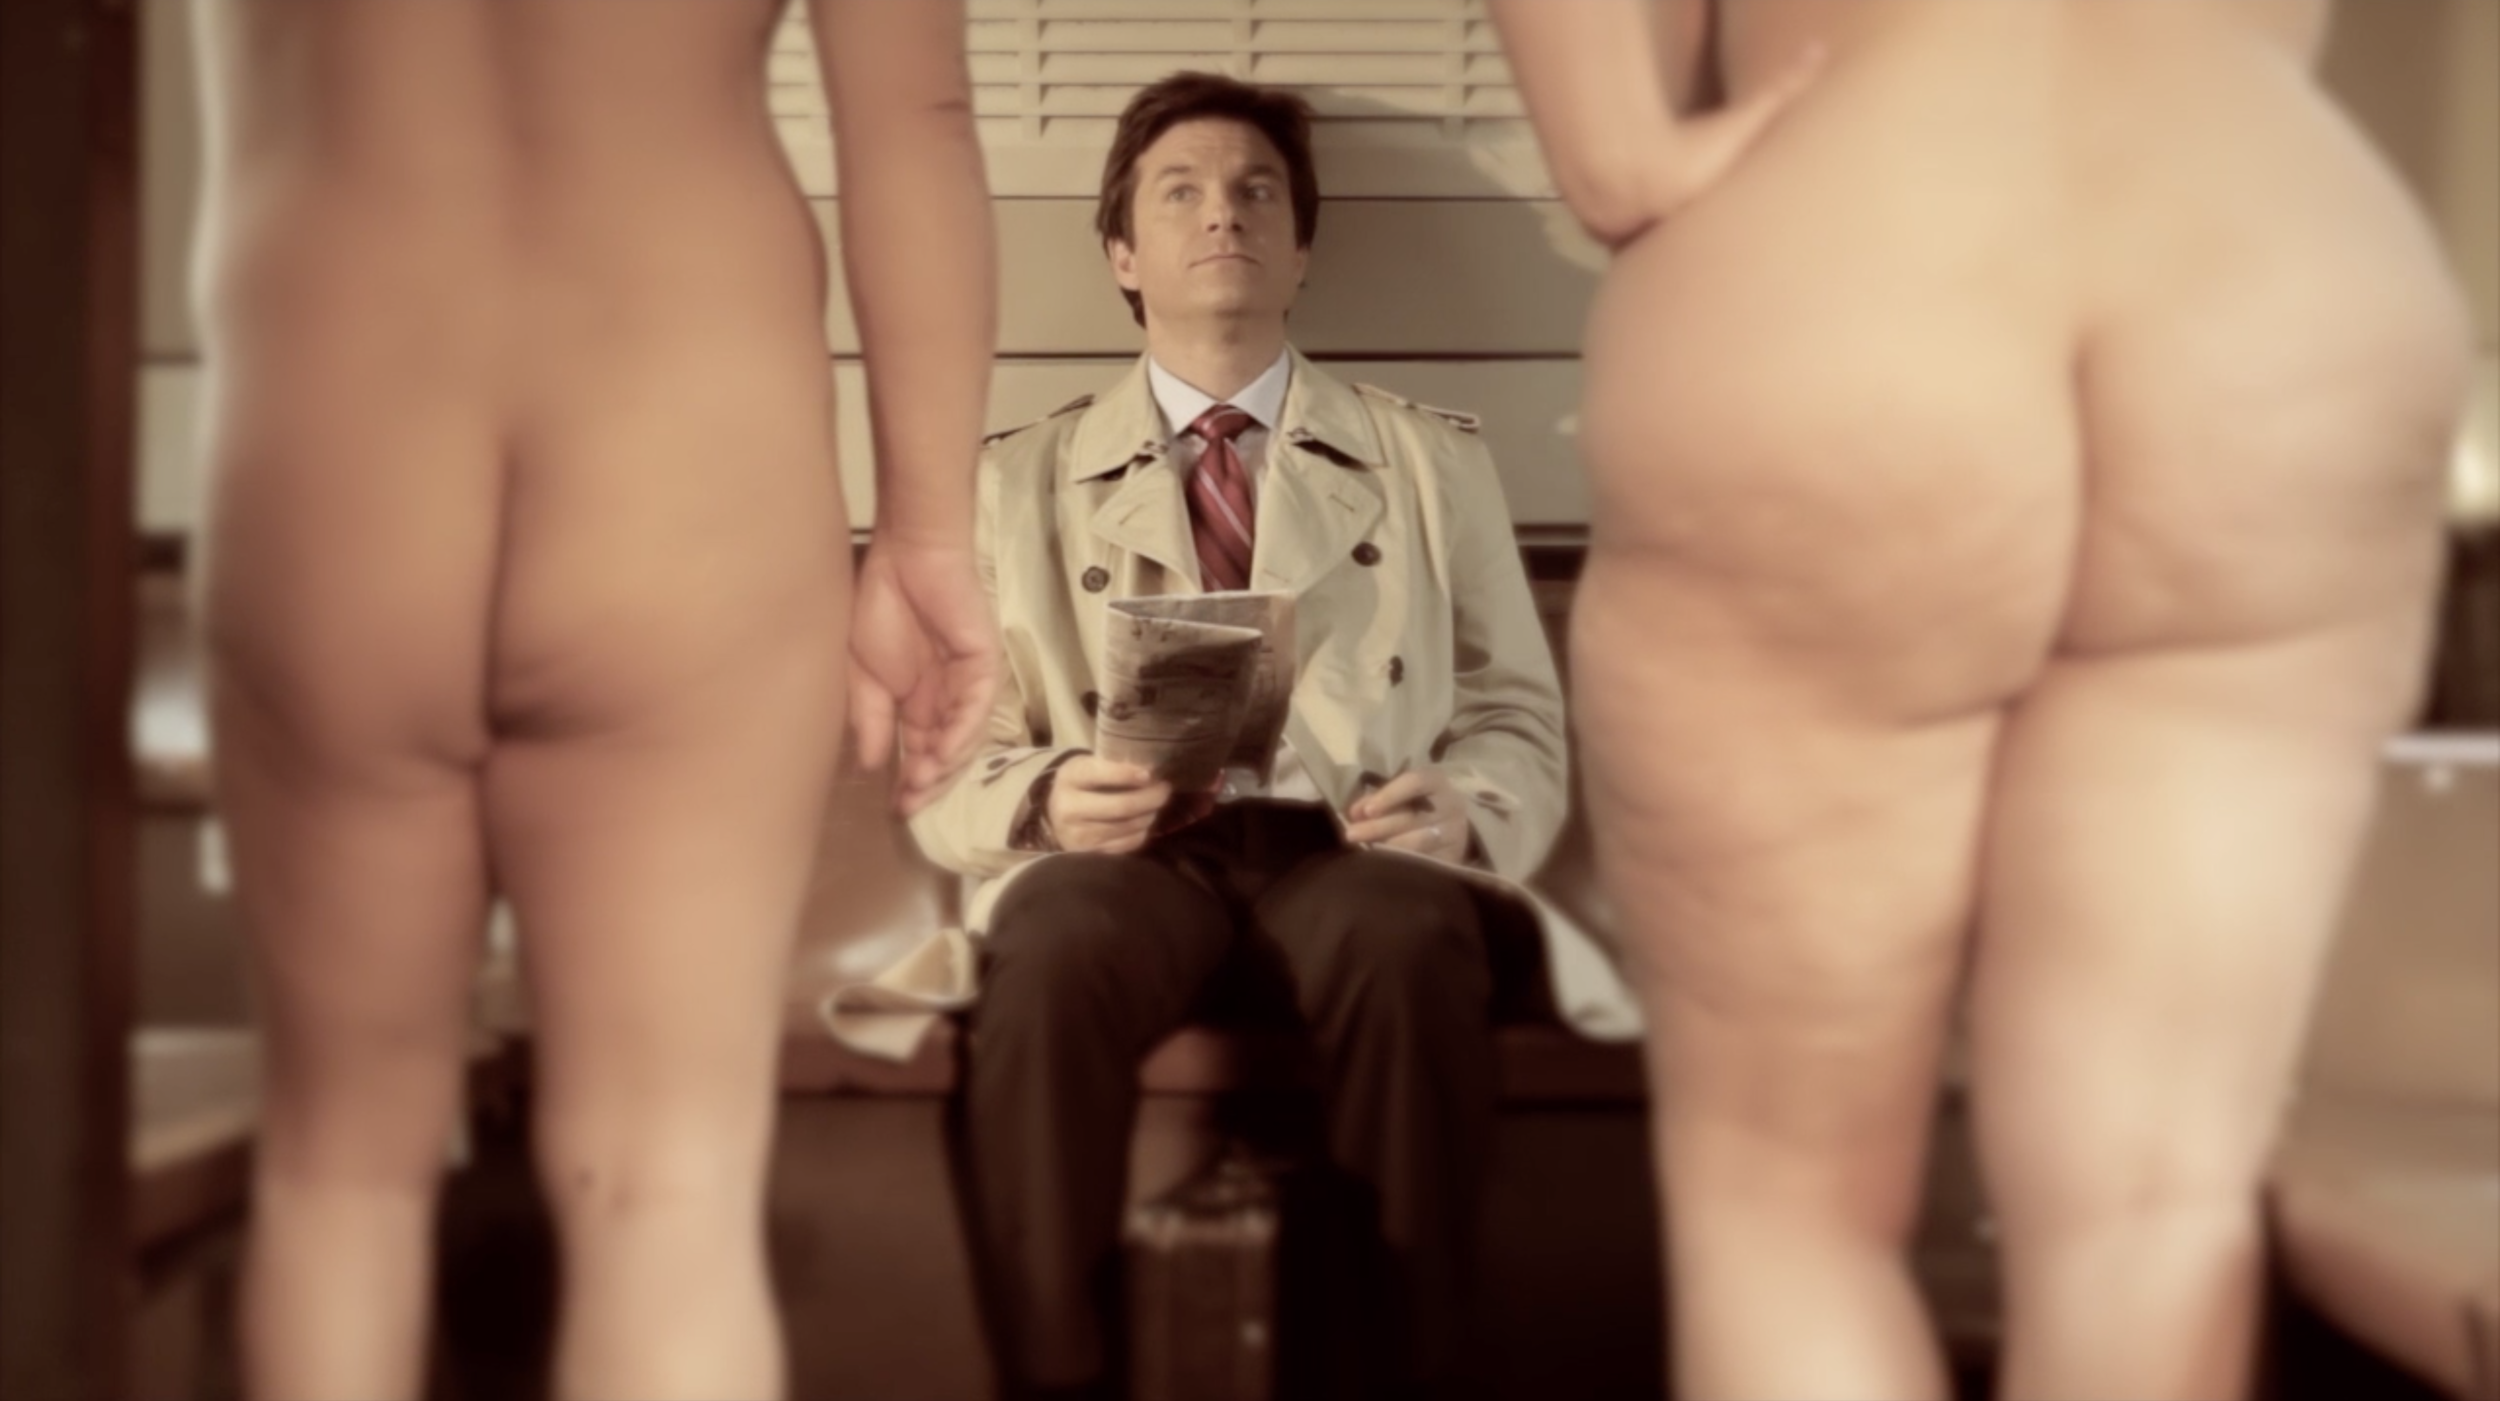 NAKED COMMUTE- Jason Bateman